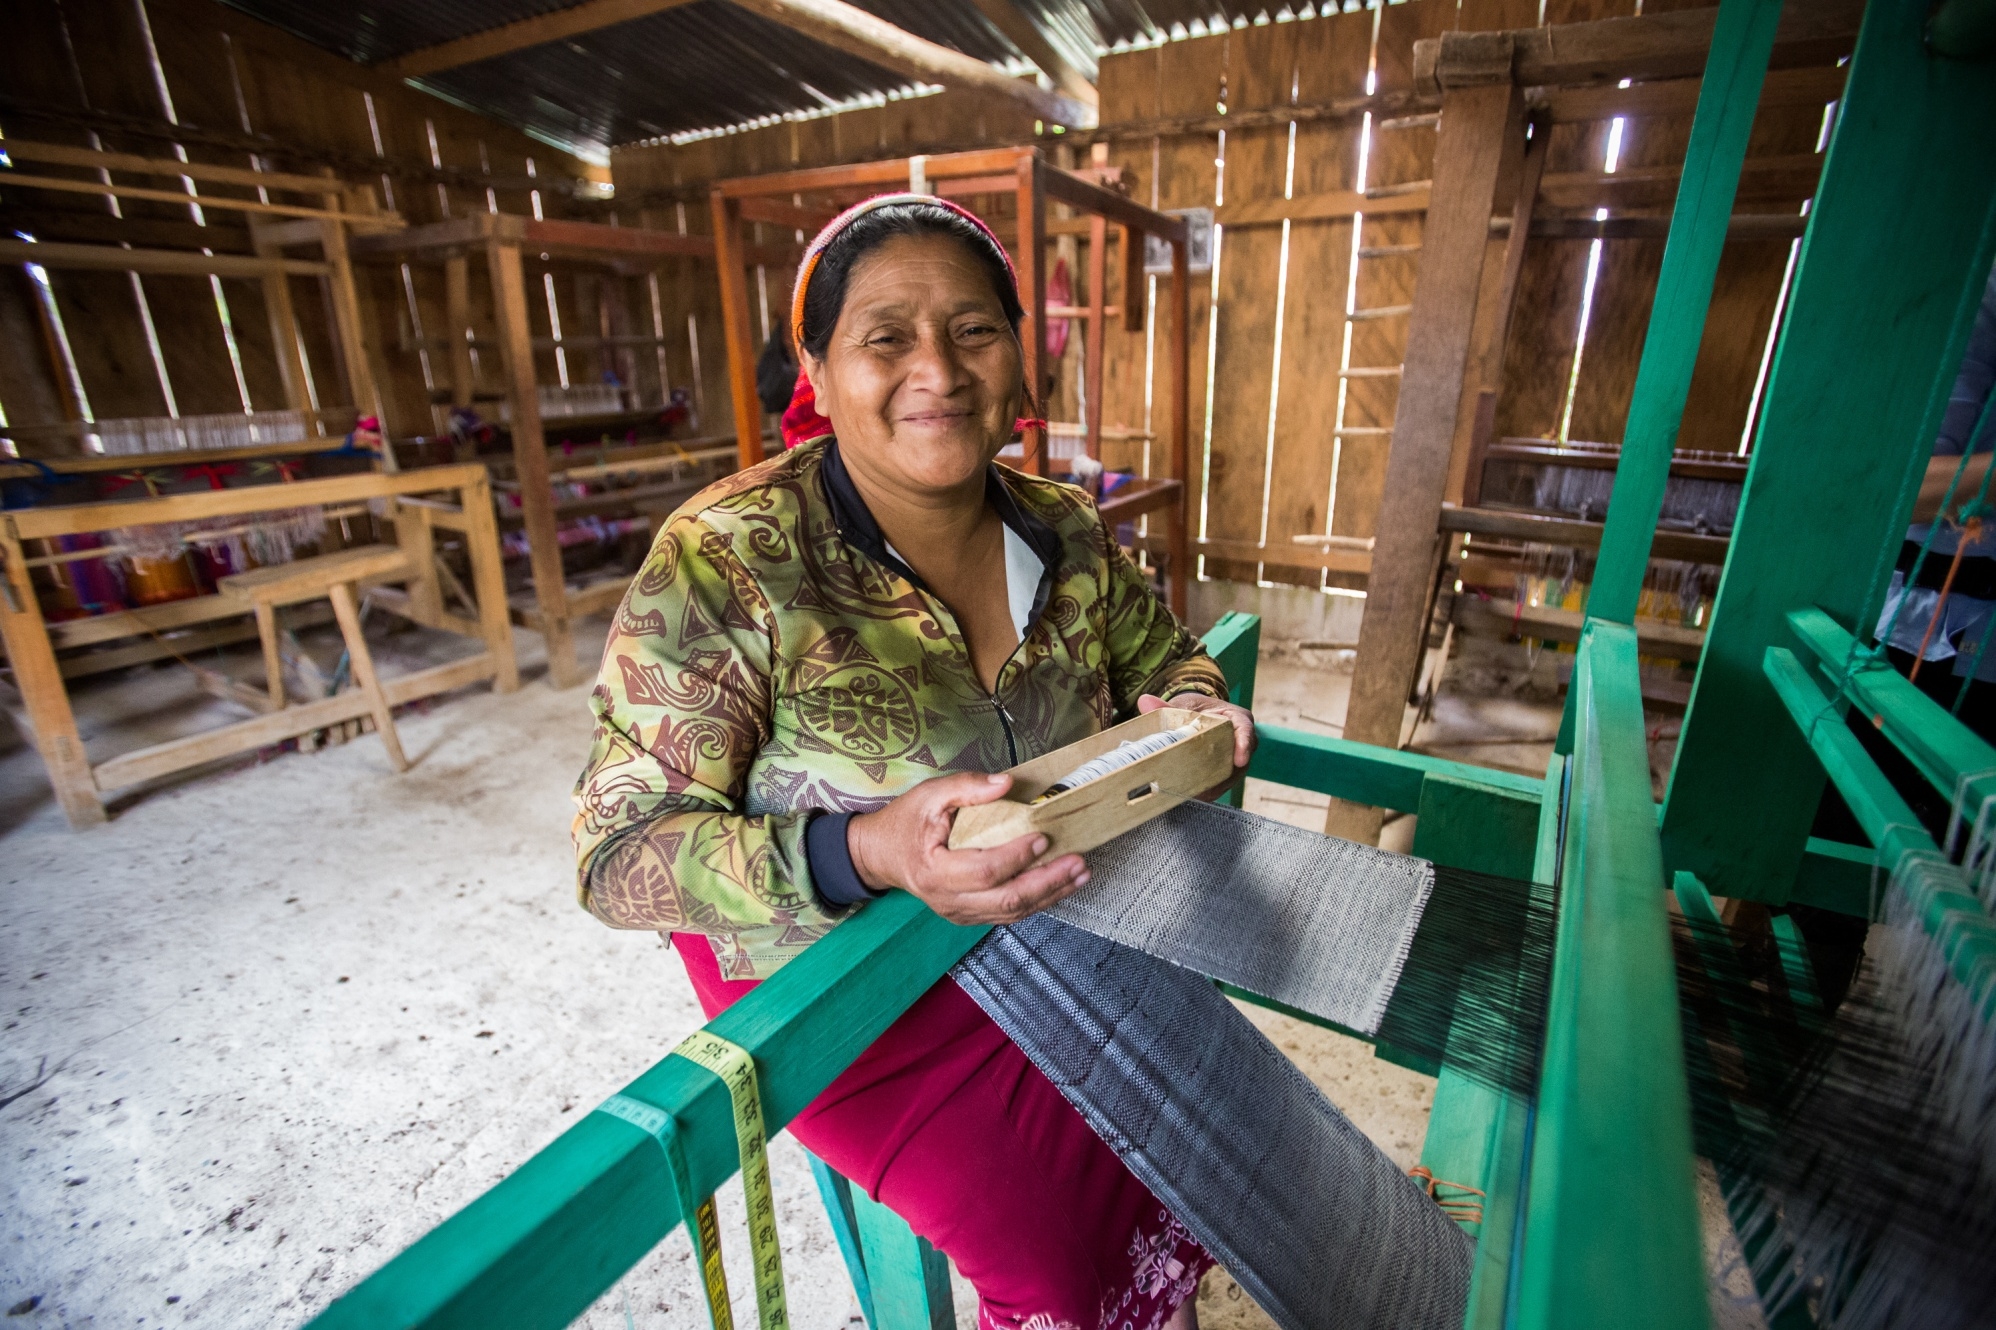 Remigia Dominiguez is the head of a weaving cooperative in El Cacao, Honduras, that uses microloans from the Adelante Foundation to expand its business. The Adelante Foundation's microcredit program, which offers women loans and business training aimed at increasing their household incomes, is supported by a Rotary global grant.